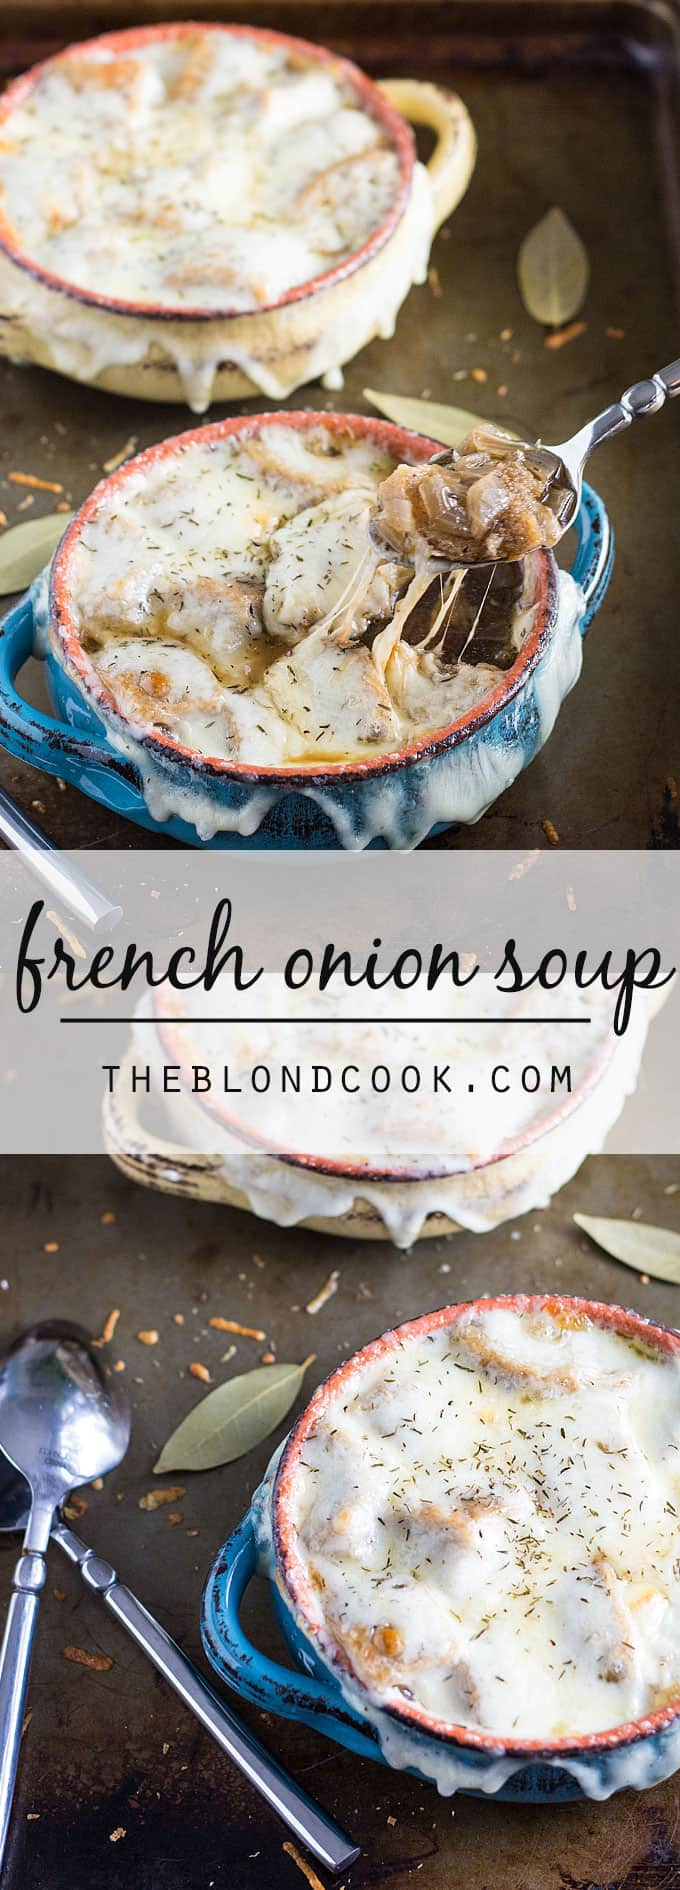 French Onion Soup - The ultimate comfort soup seasoned with thyme and bay leaf and topped with french bread, provolone and Parmesan cheeses.